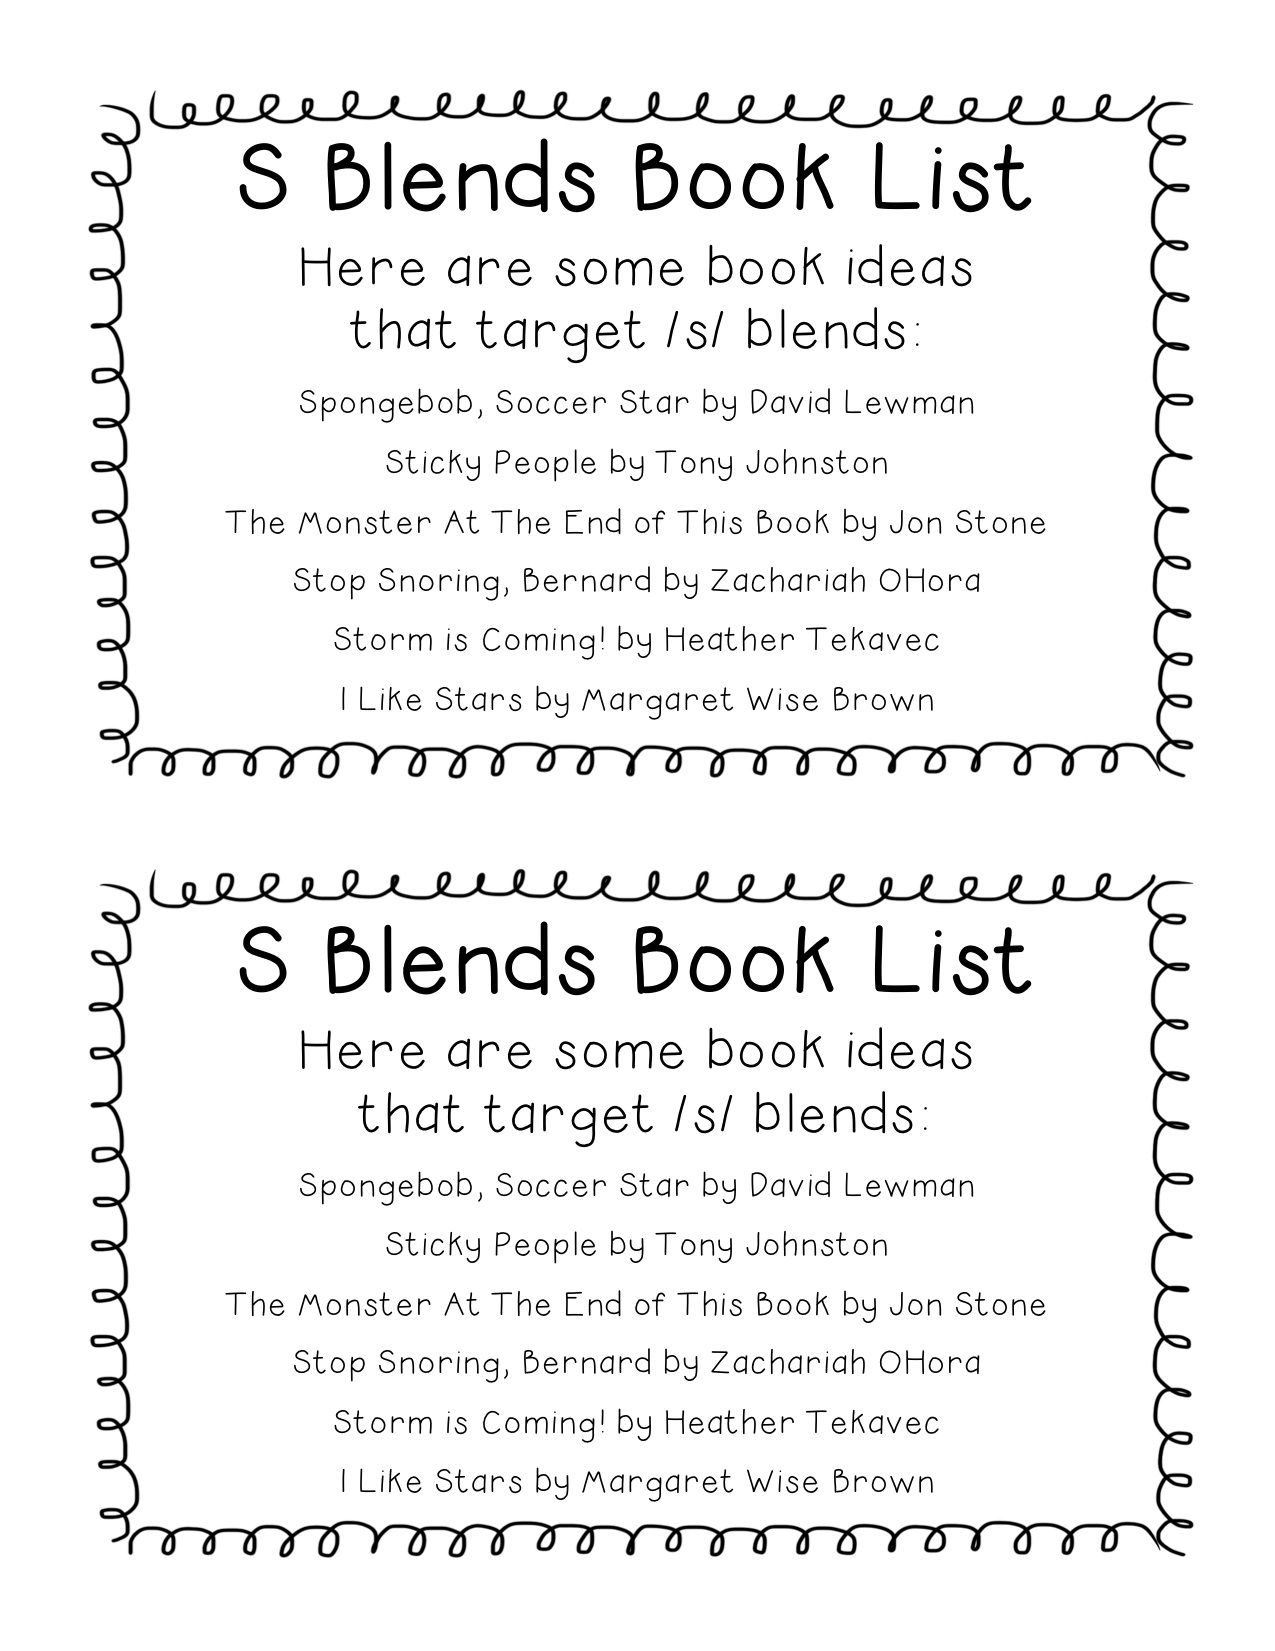 worksheet R Blends Worksheets 78 best images about blends on pinterest nonsense words bingo and pocket charts